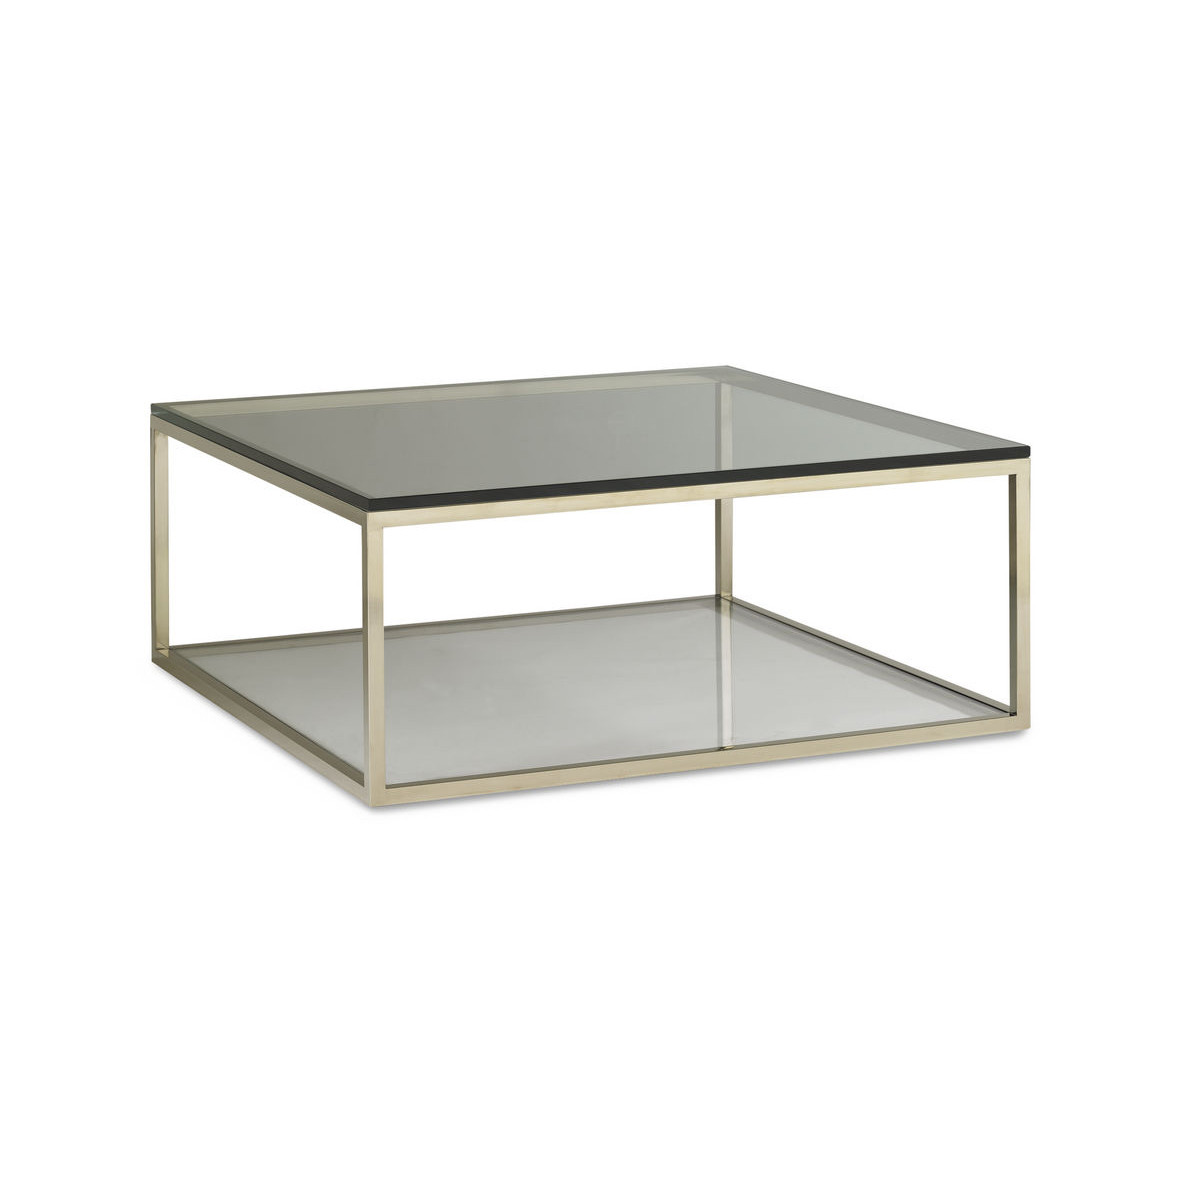 Glass Square Coffee Table Grey Lift Up Modern Coffee Table Mechanism Hardware Fitting Furniture Hinge Spring (View 5 of 10)